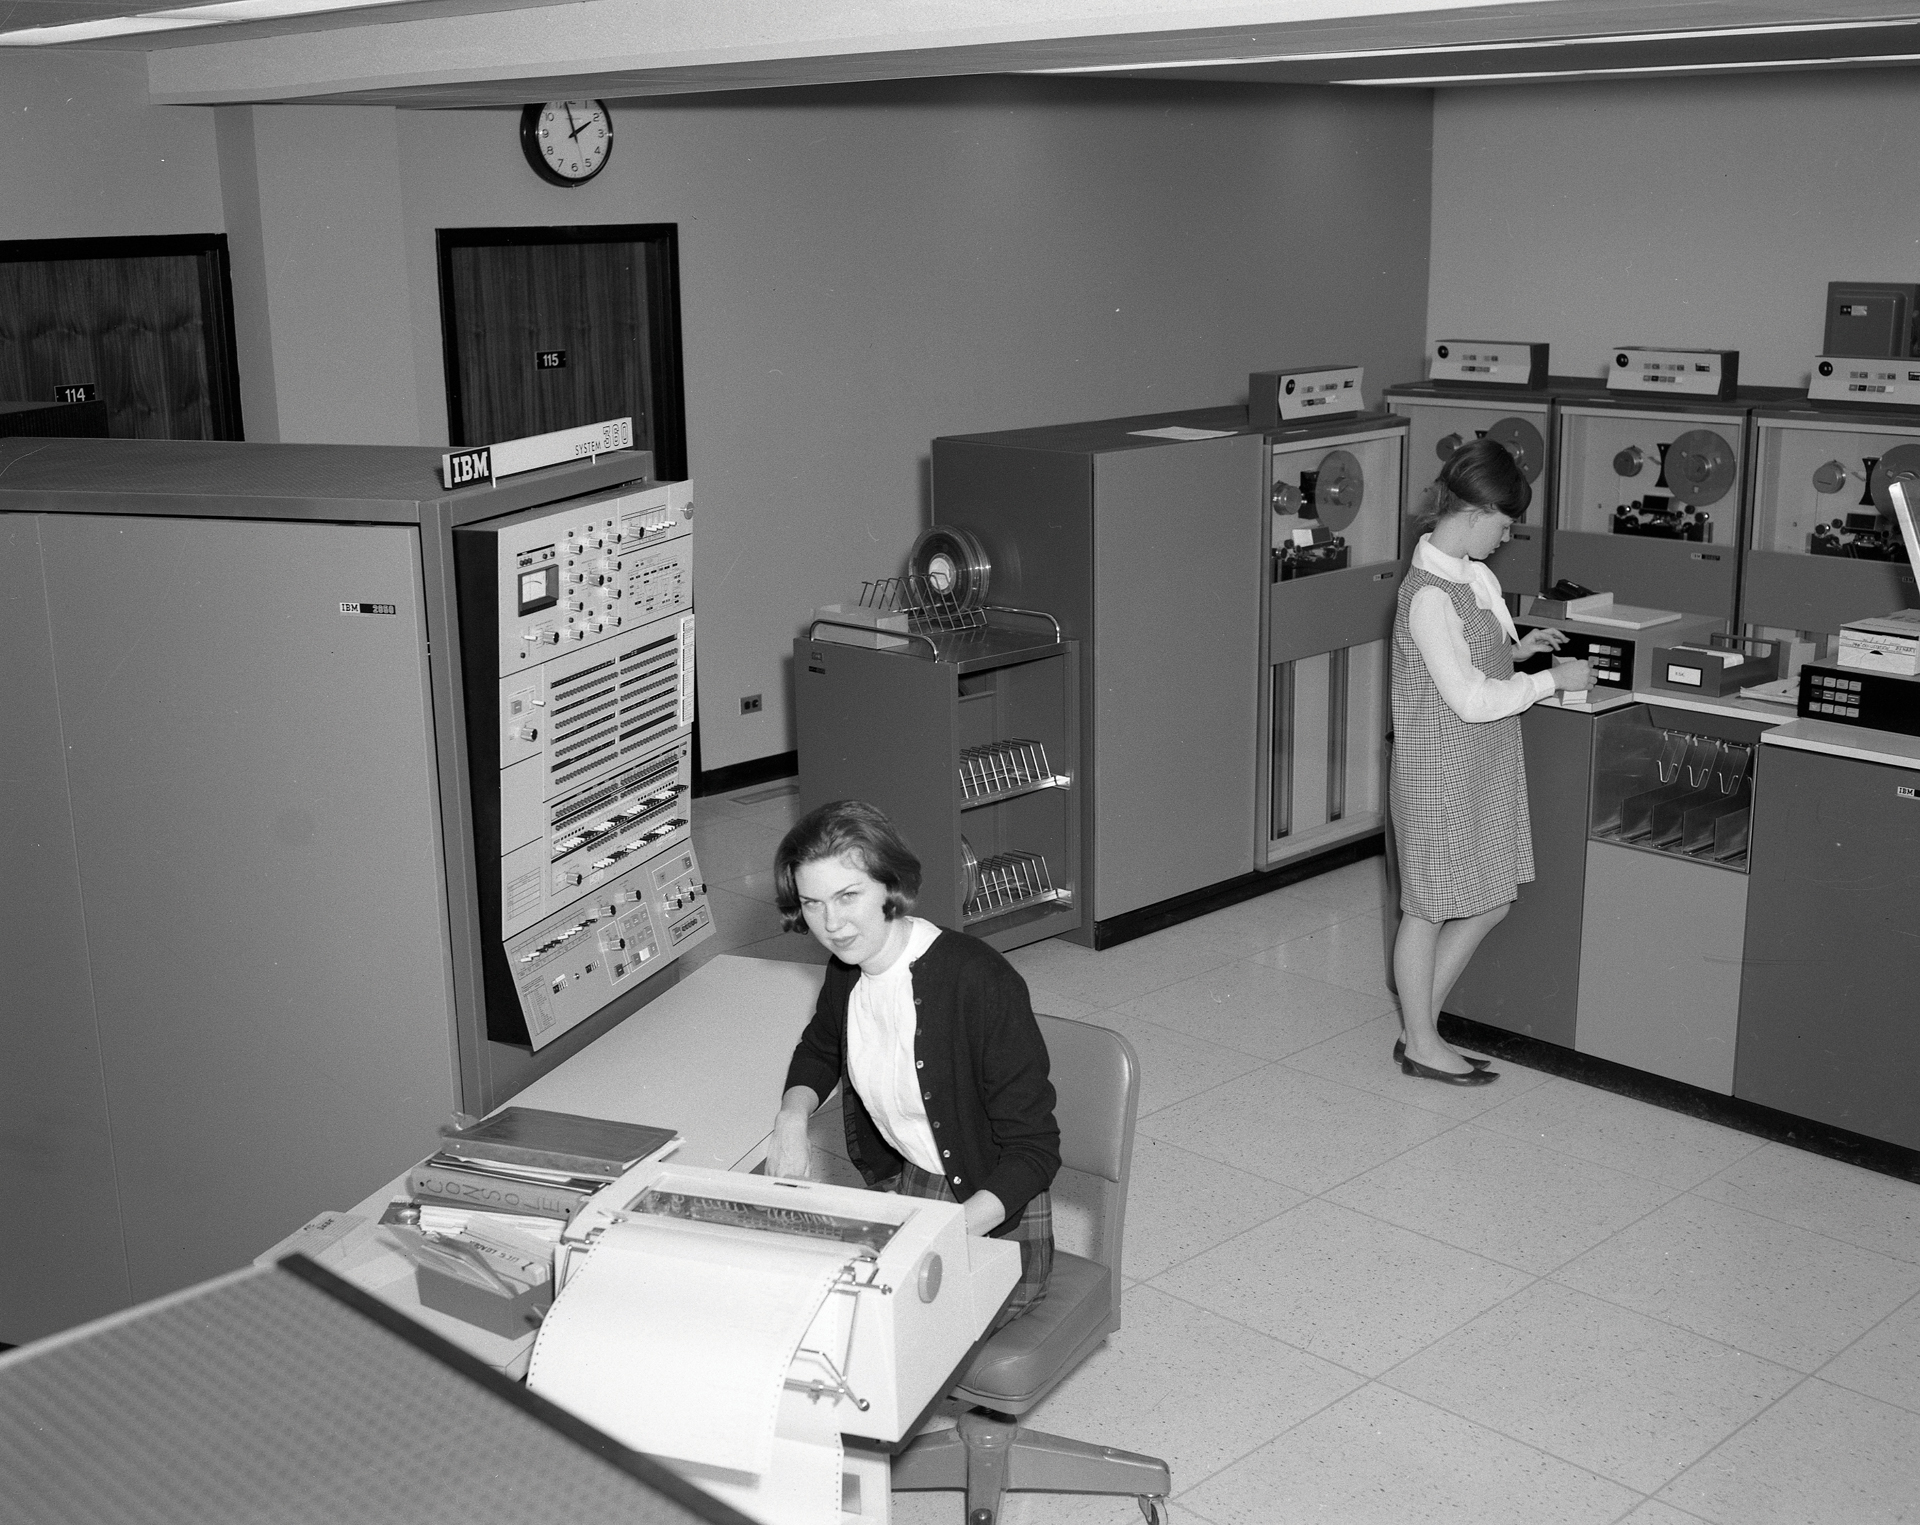 NRAO's Early Computers